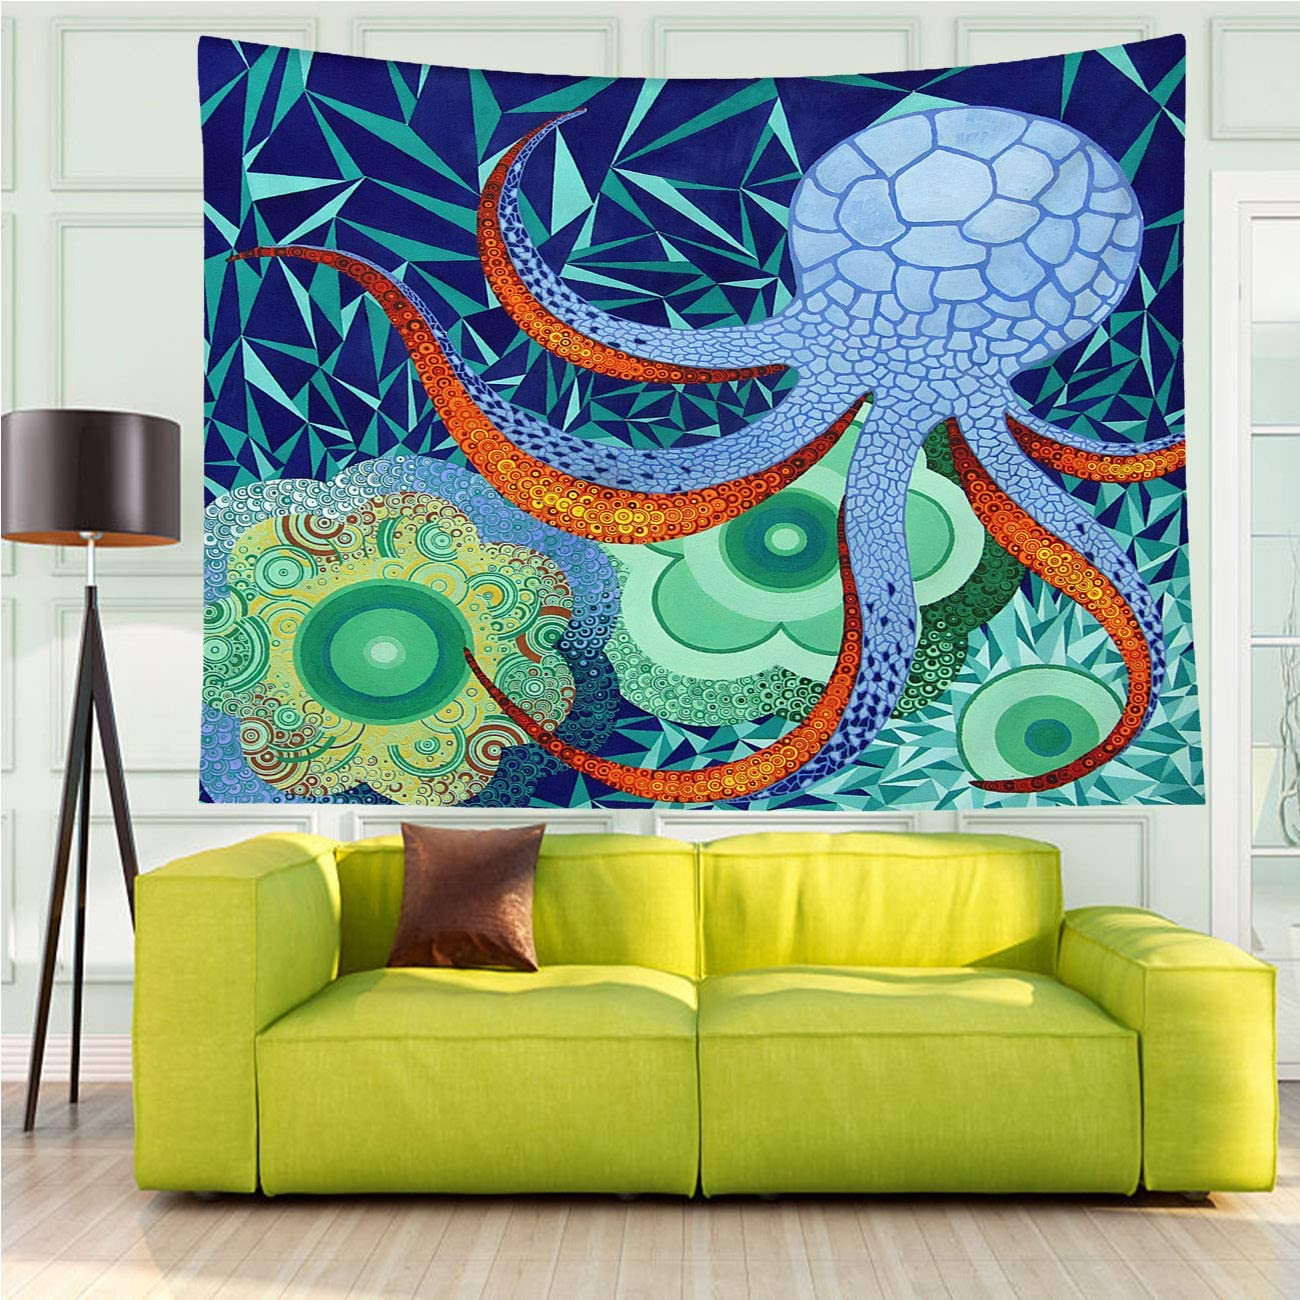 MinGz Octopus Tapestry Wall Hanging Versatile,Abstract Octopus Garden,Tapestry for Living Room Bedroom Dorm Home Decor,70x50 in